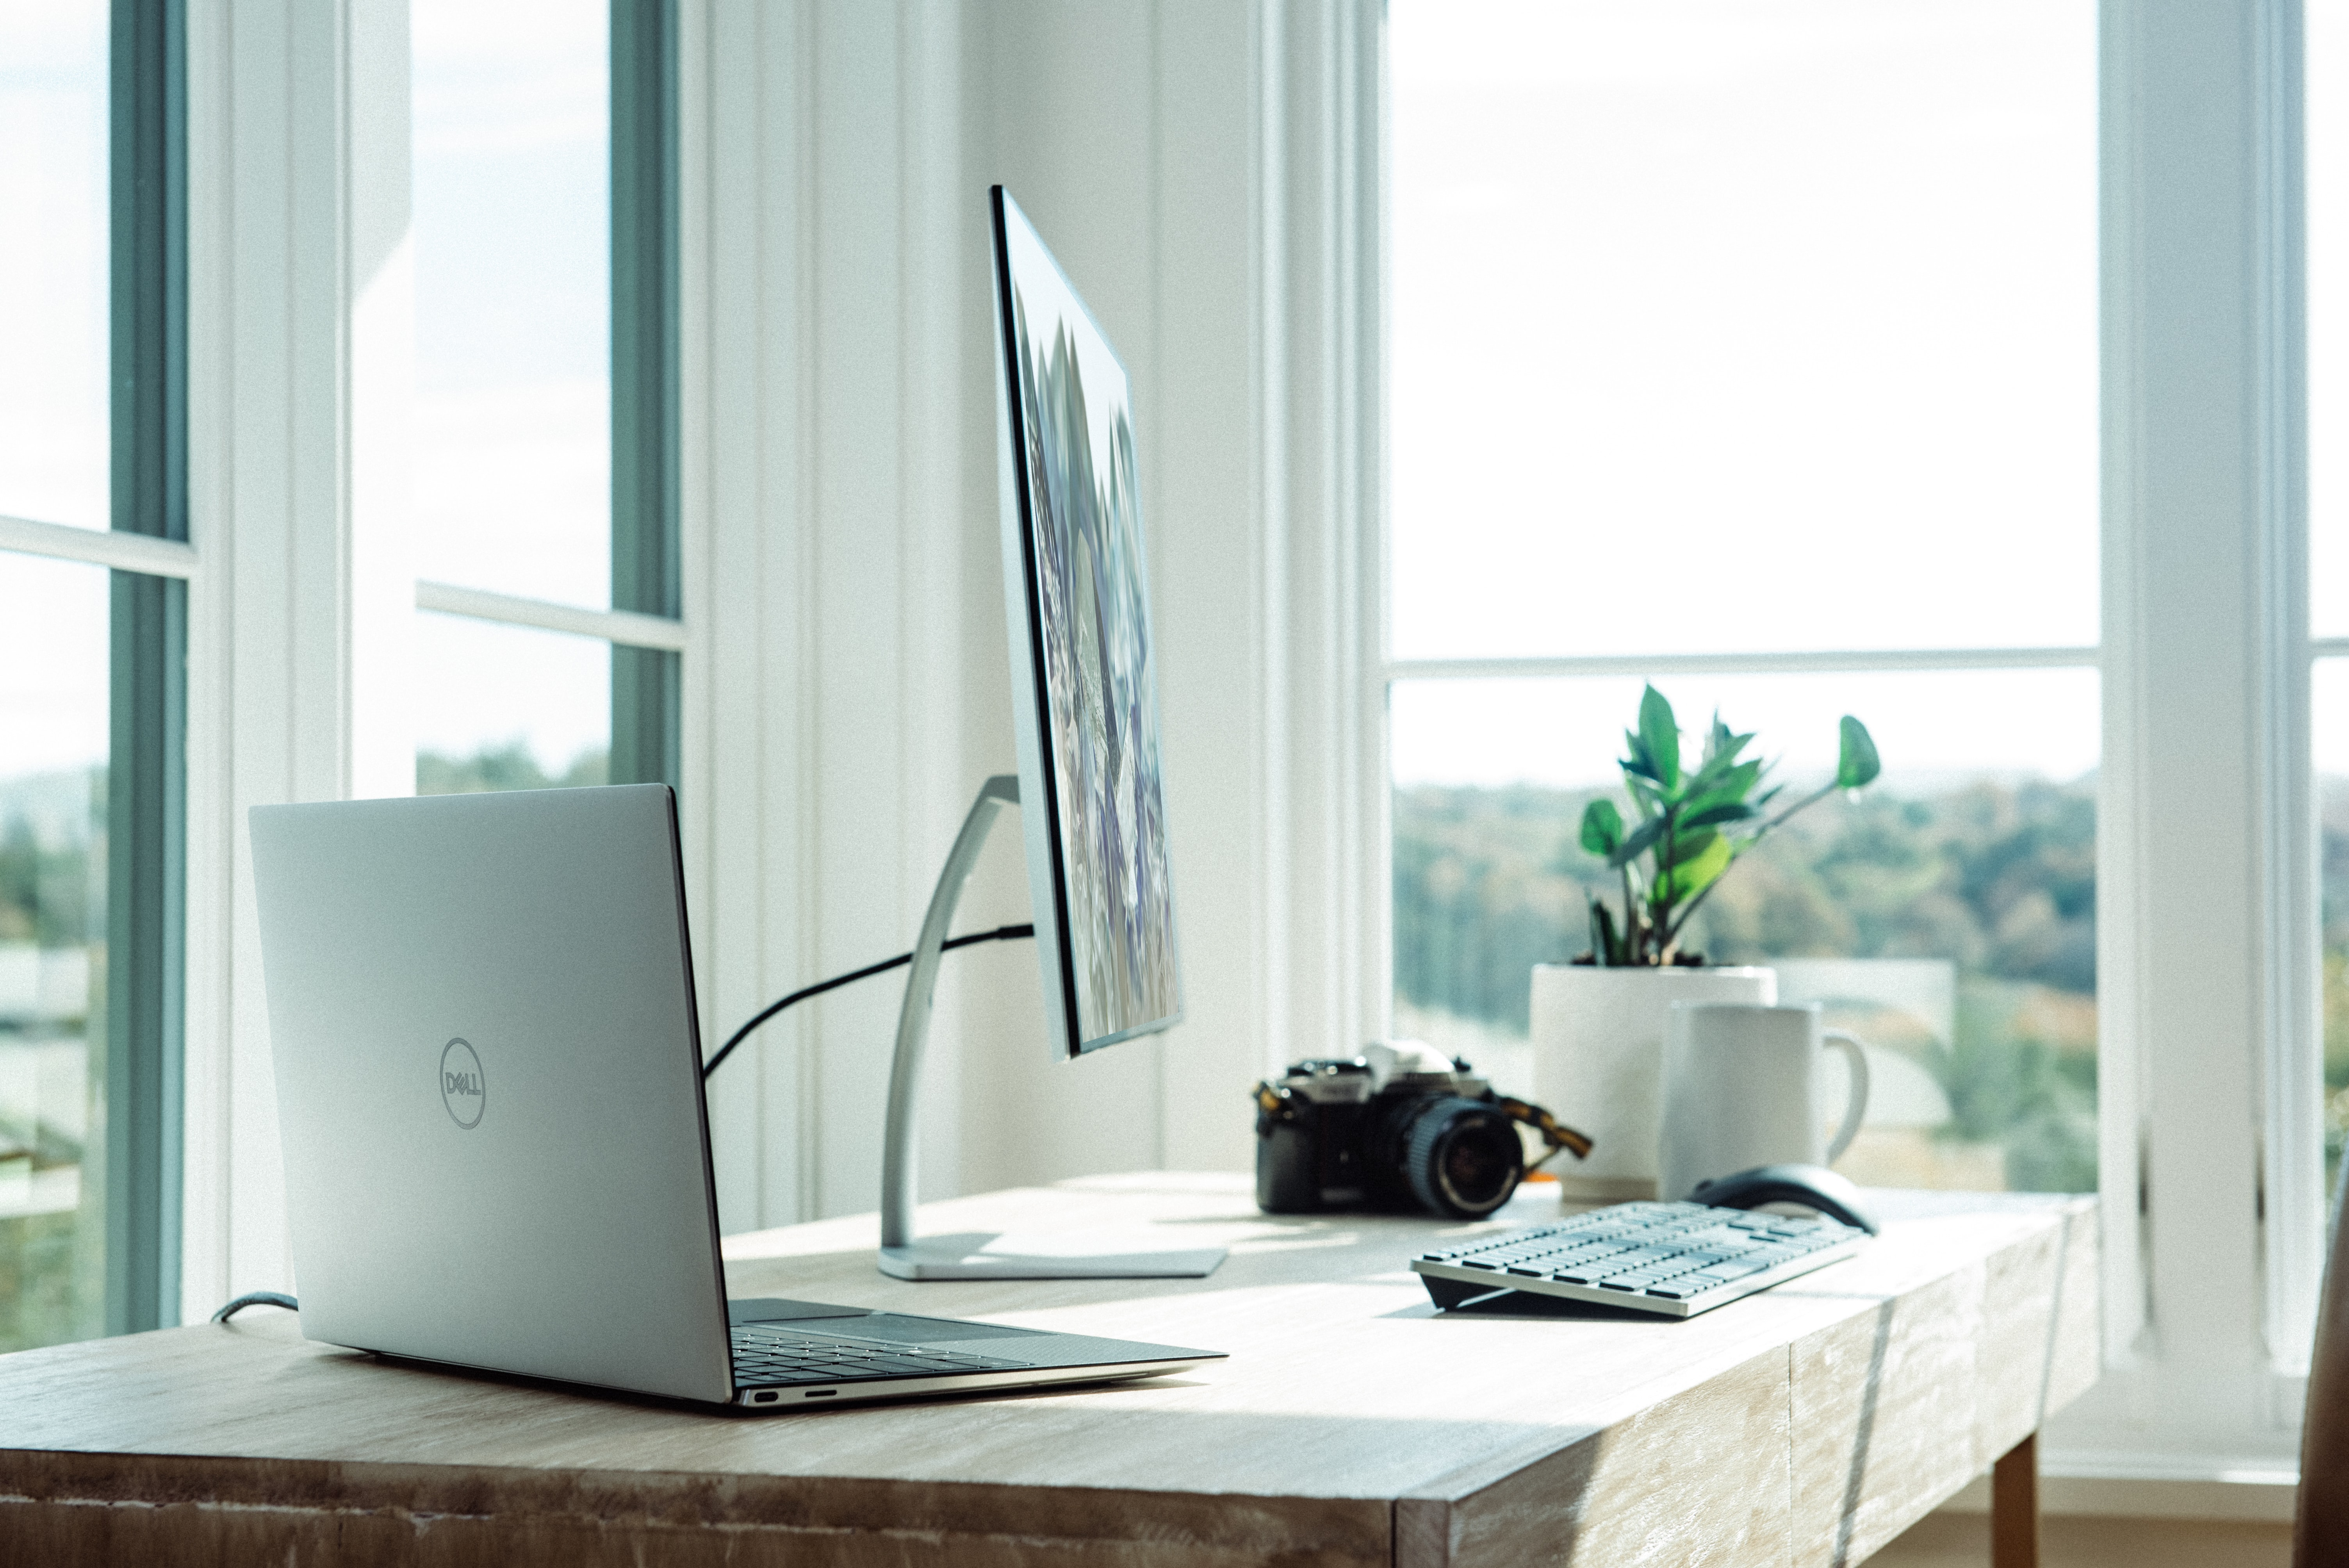 Office desk with computer, monitor, camera and 3 windows in the background